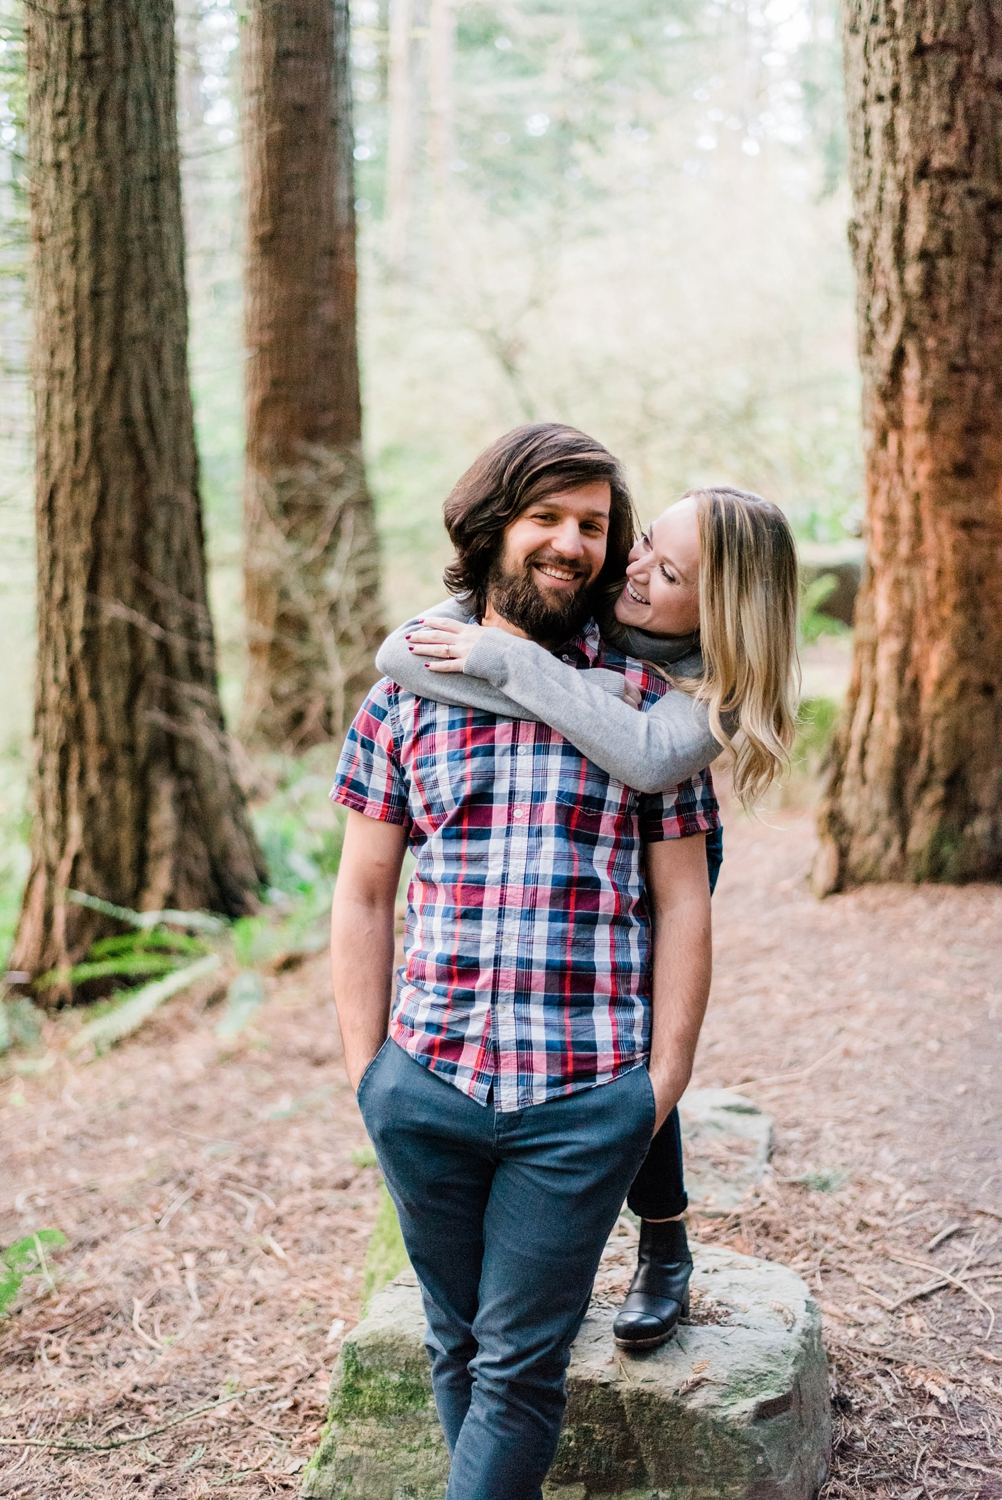 washington-park-portland-engagement-photos-hoyt-arboretum-shelley-marie-photo-225_cr.jpg